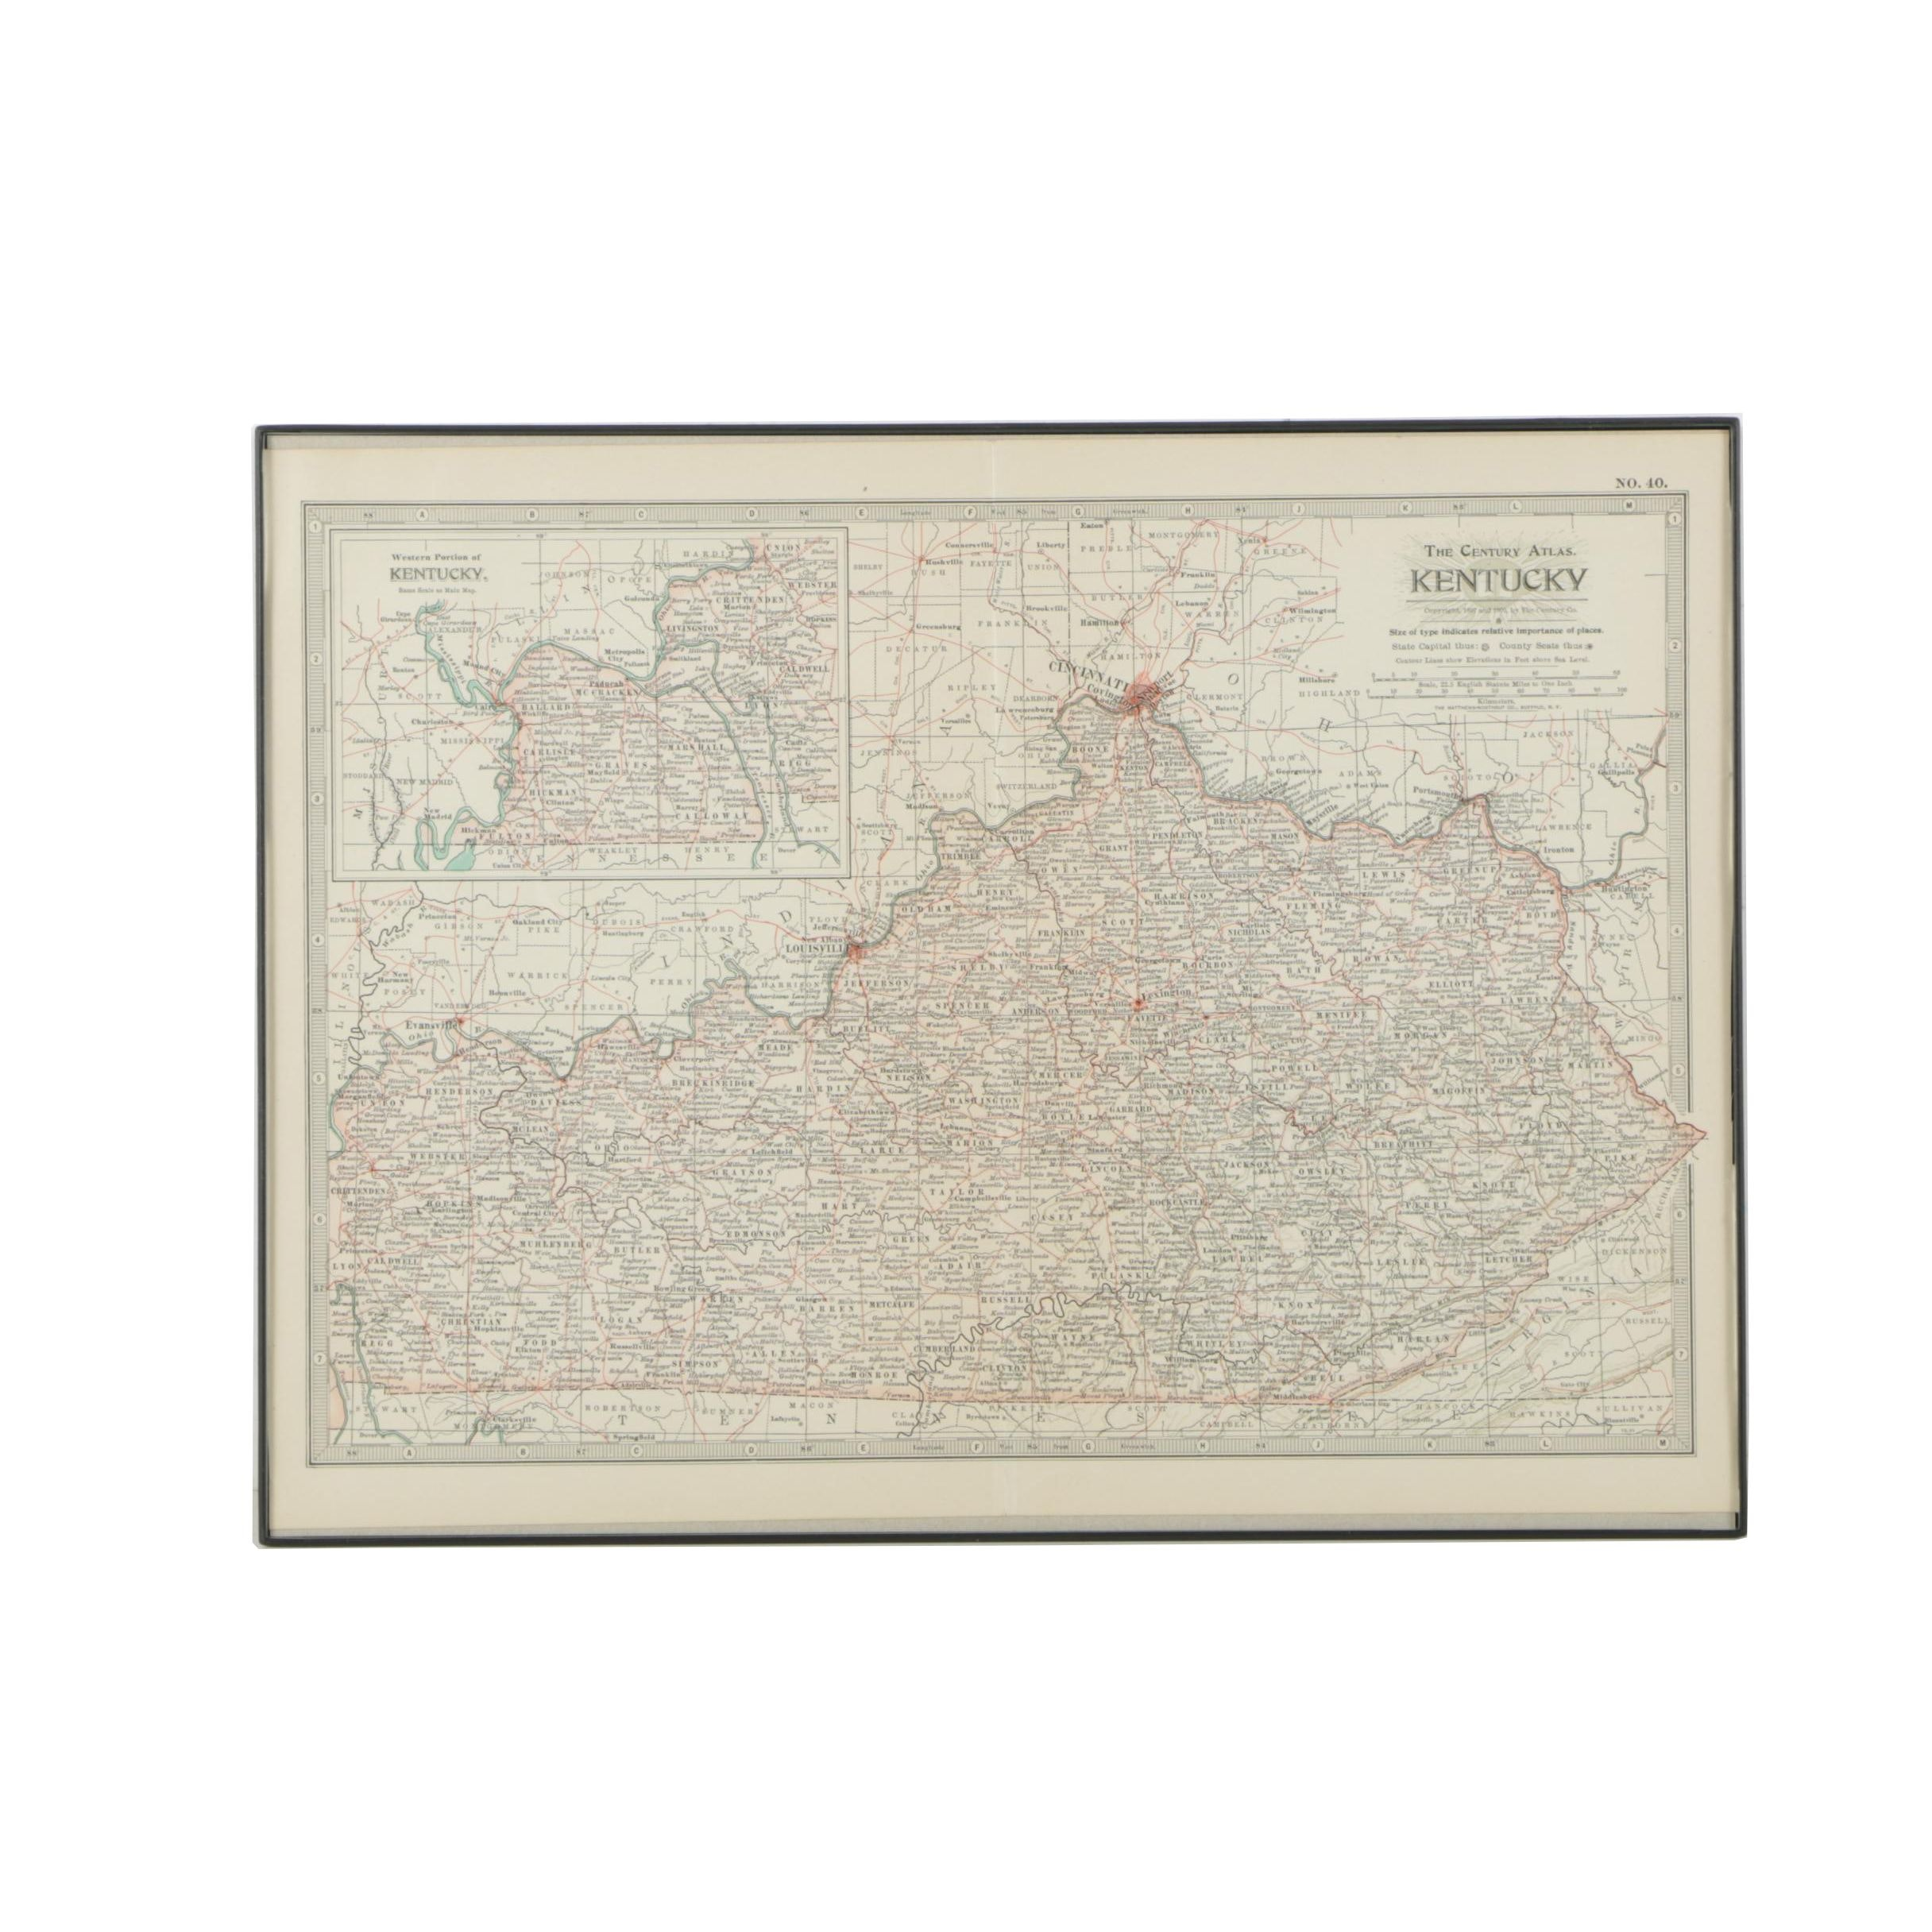 1902 Political and Topographical Map of Kentucky